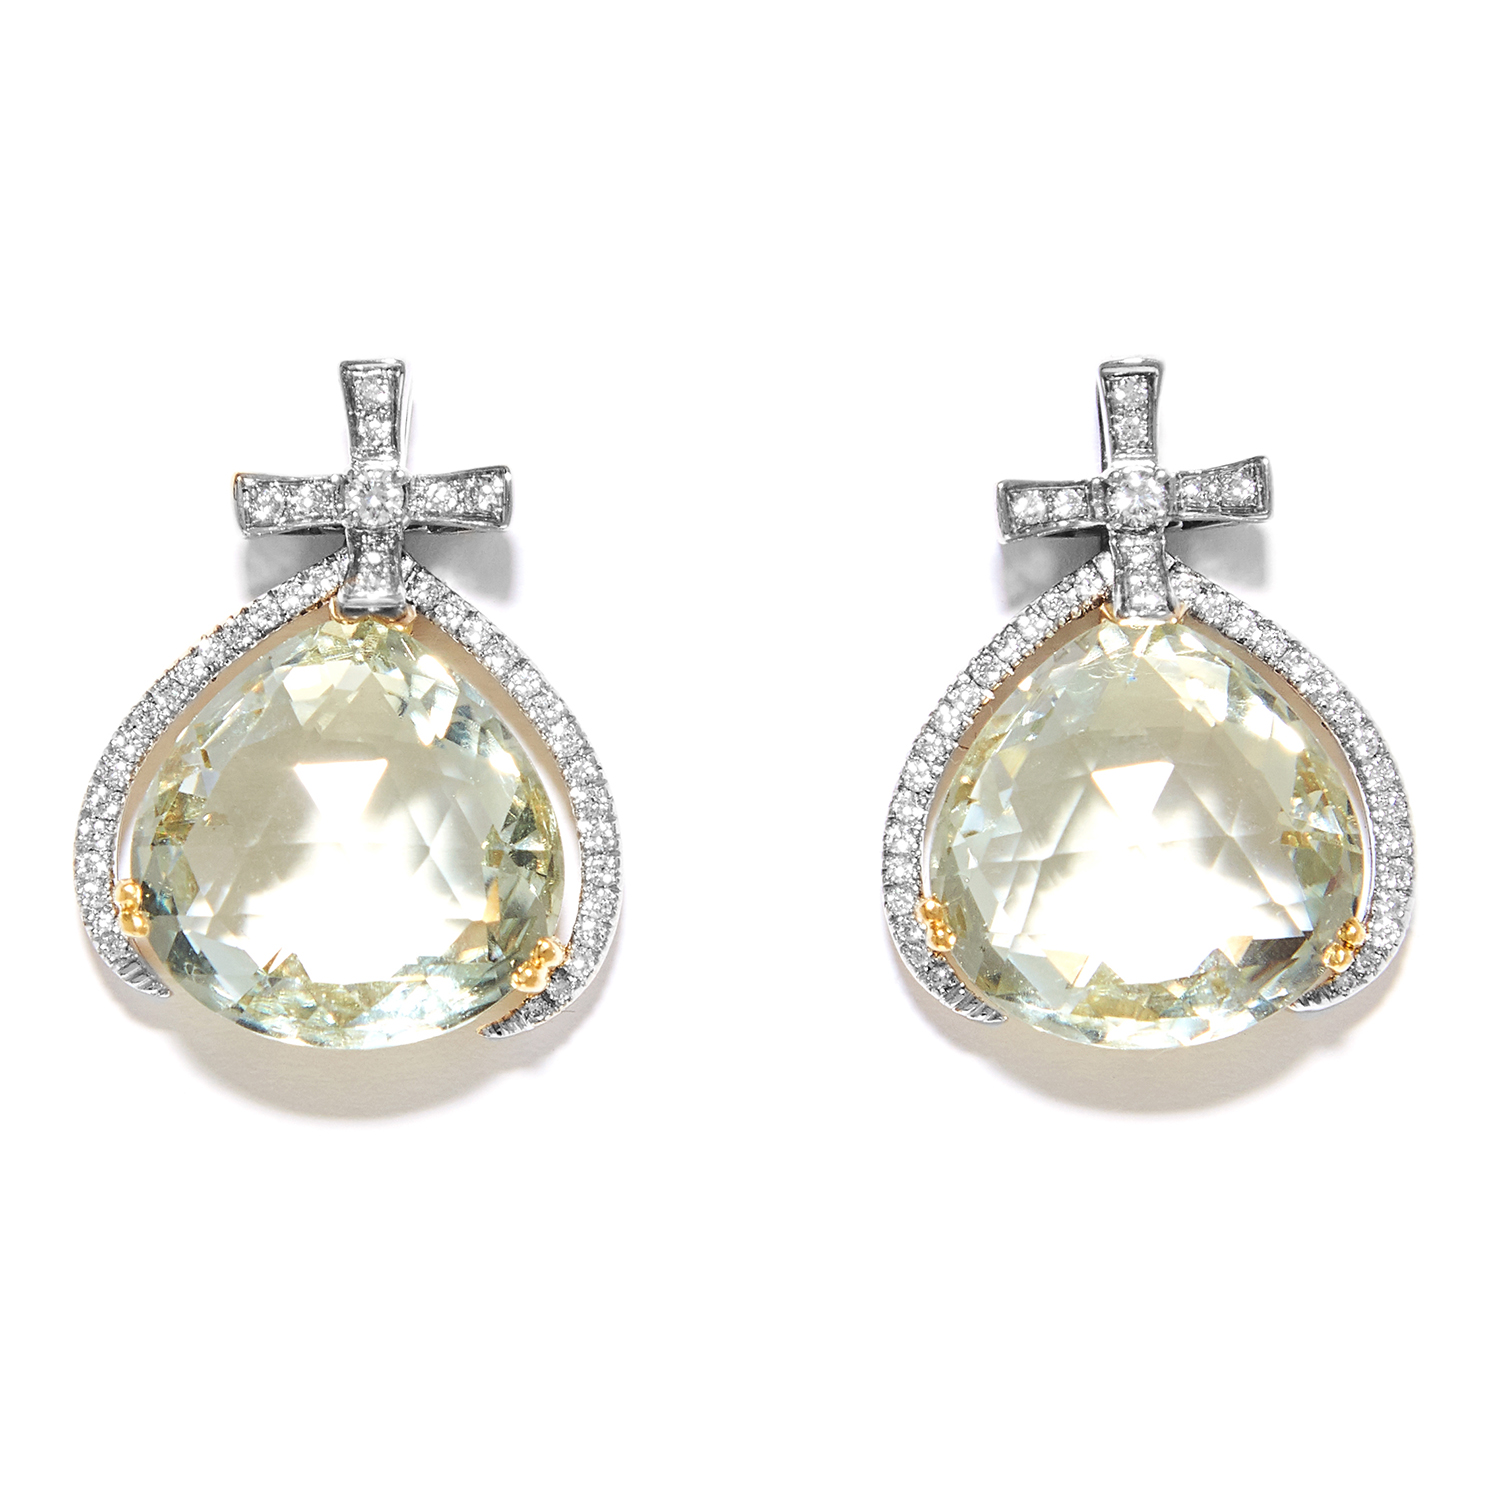 GREEN AMETHYST AND DIAMOND EARRINGS in 18ct white and yellow gold, the pear shaped green amethyst